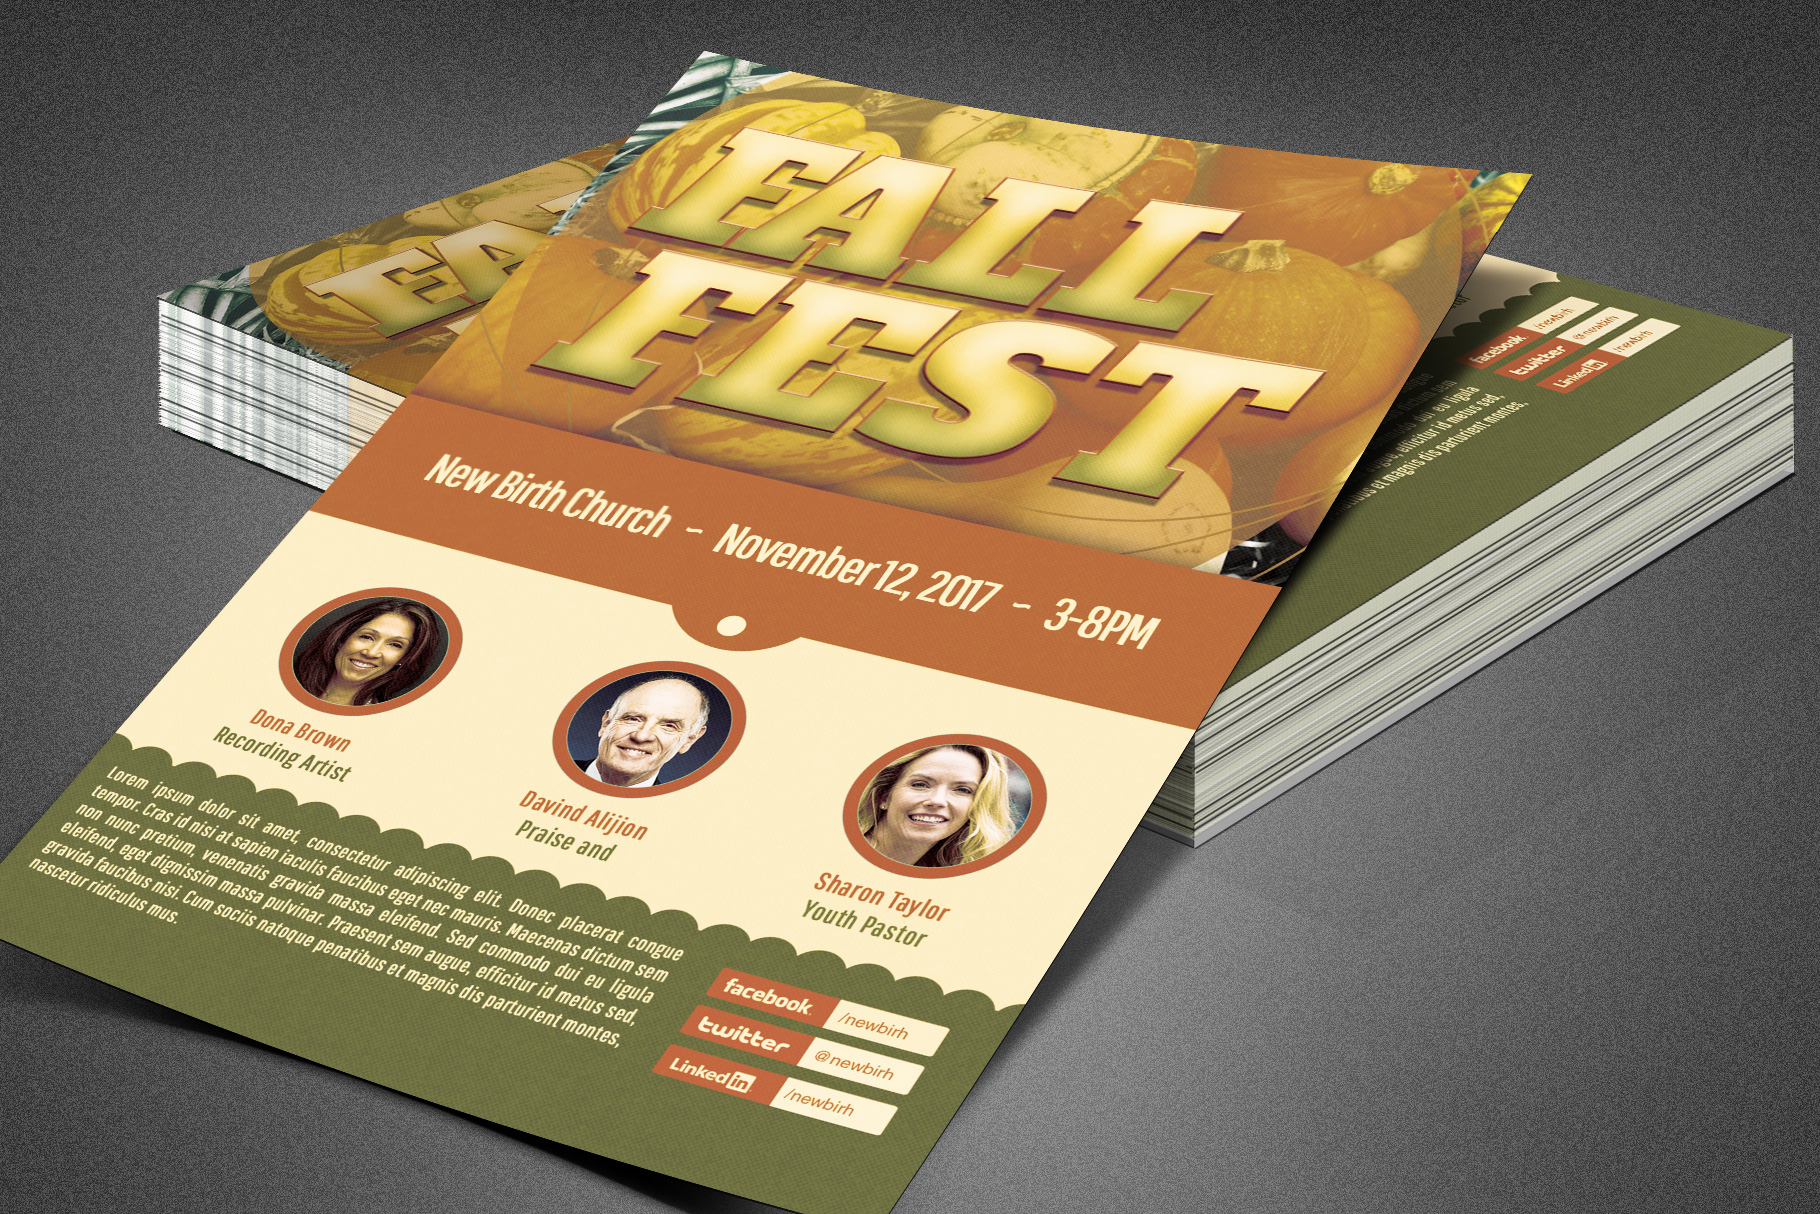 Fall Fest Church Flyer Template example image 4